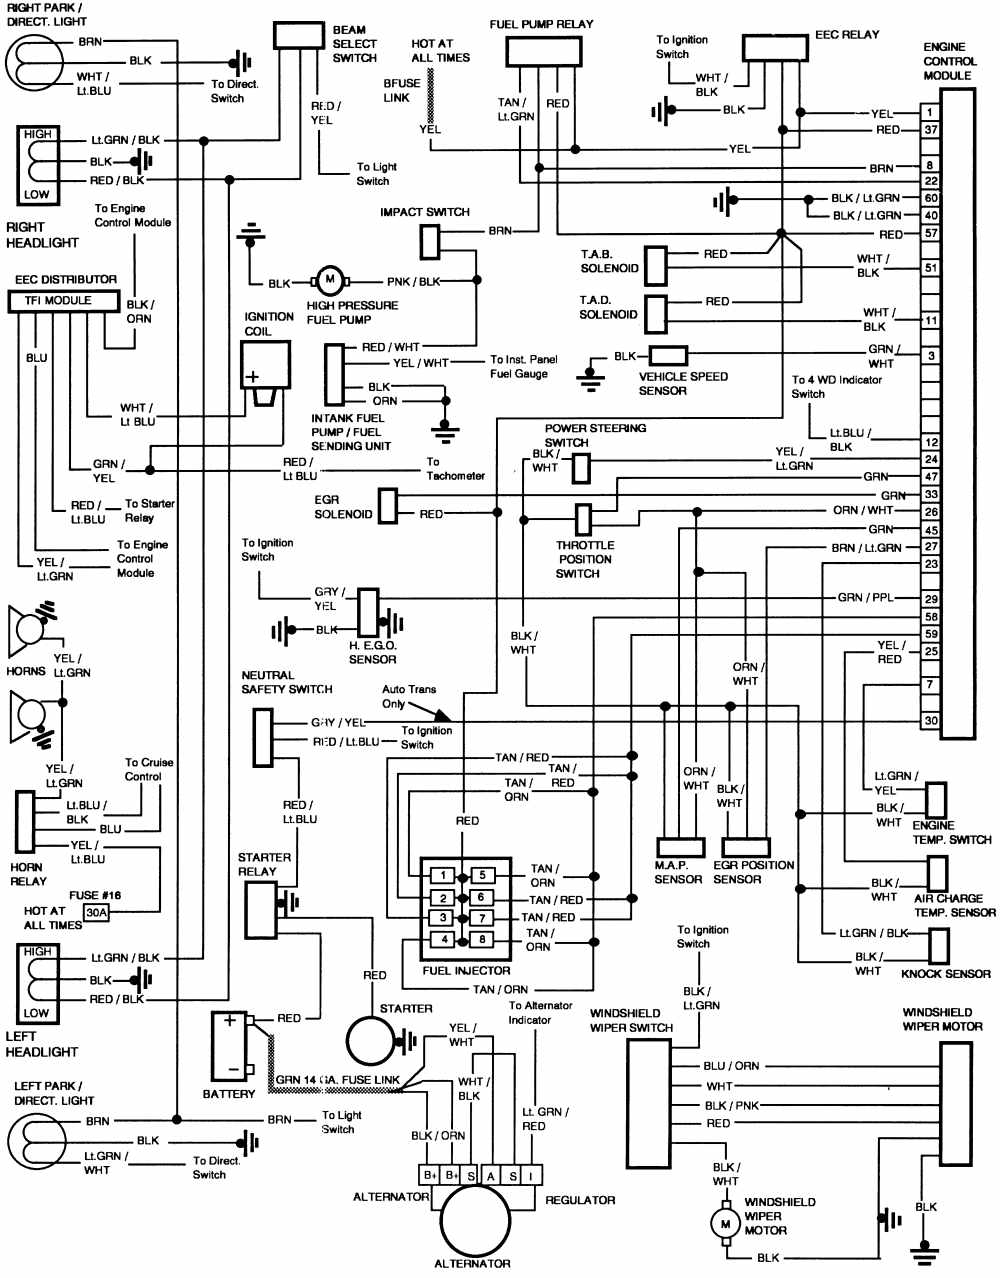 ford f-250 1986 engine control module wiring diagram | all ... 73 ford f 250 wiring diagram ford f 250 wiring diagram starter #13